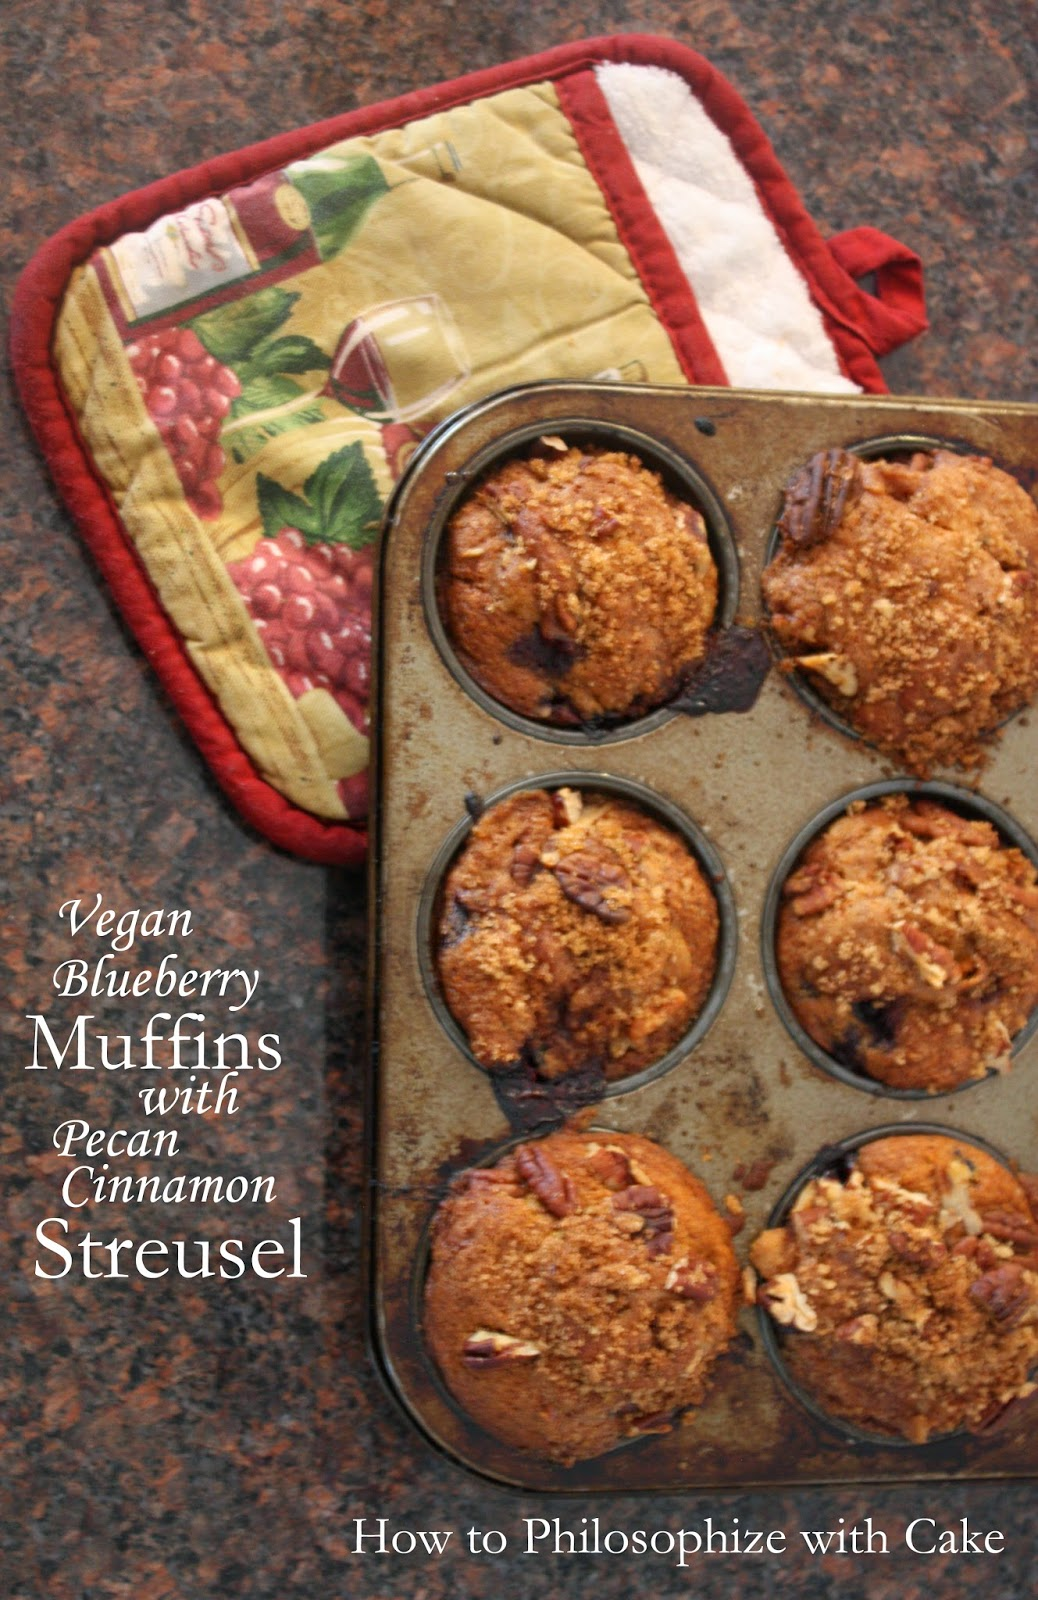 vegan blueberry muffins with pecan streusel